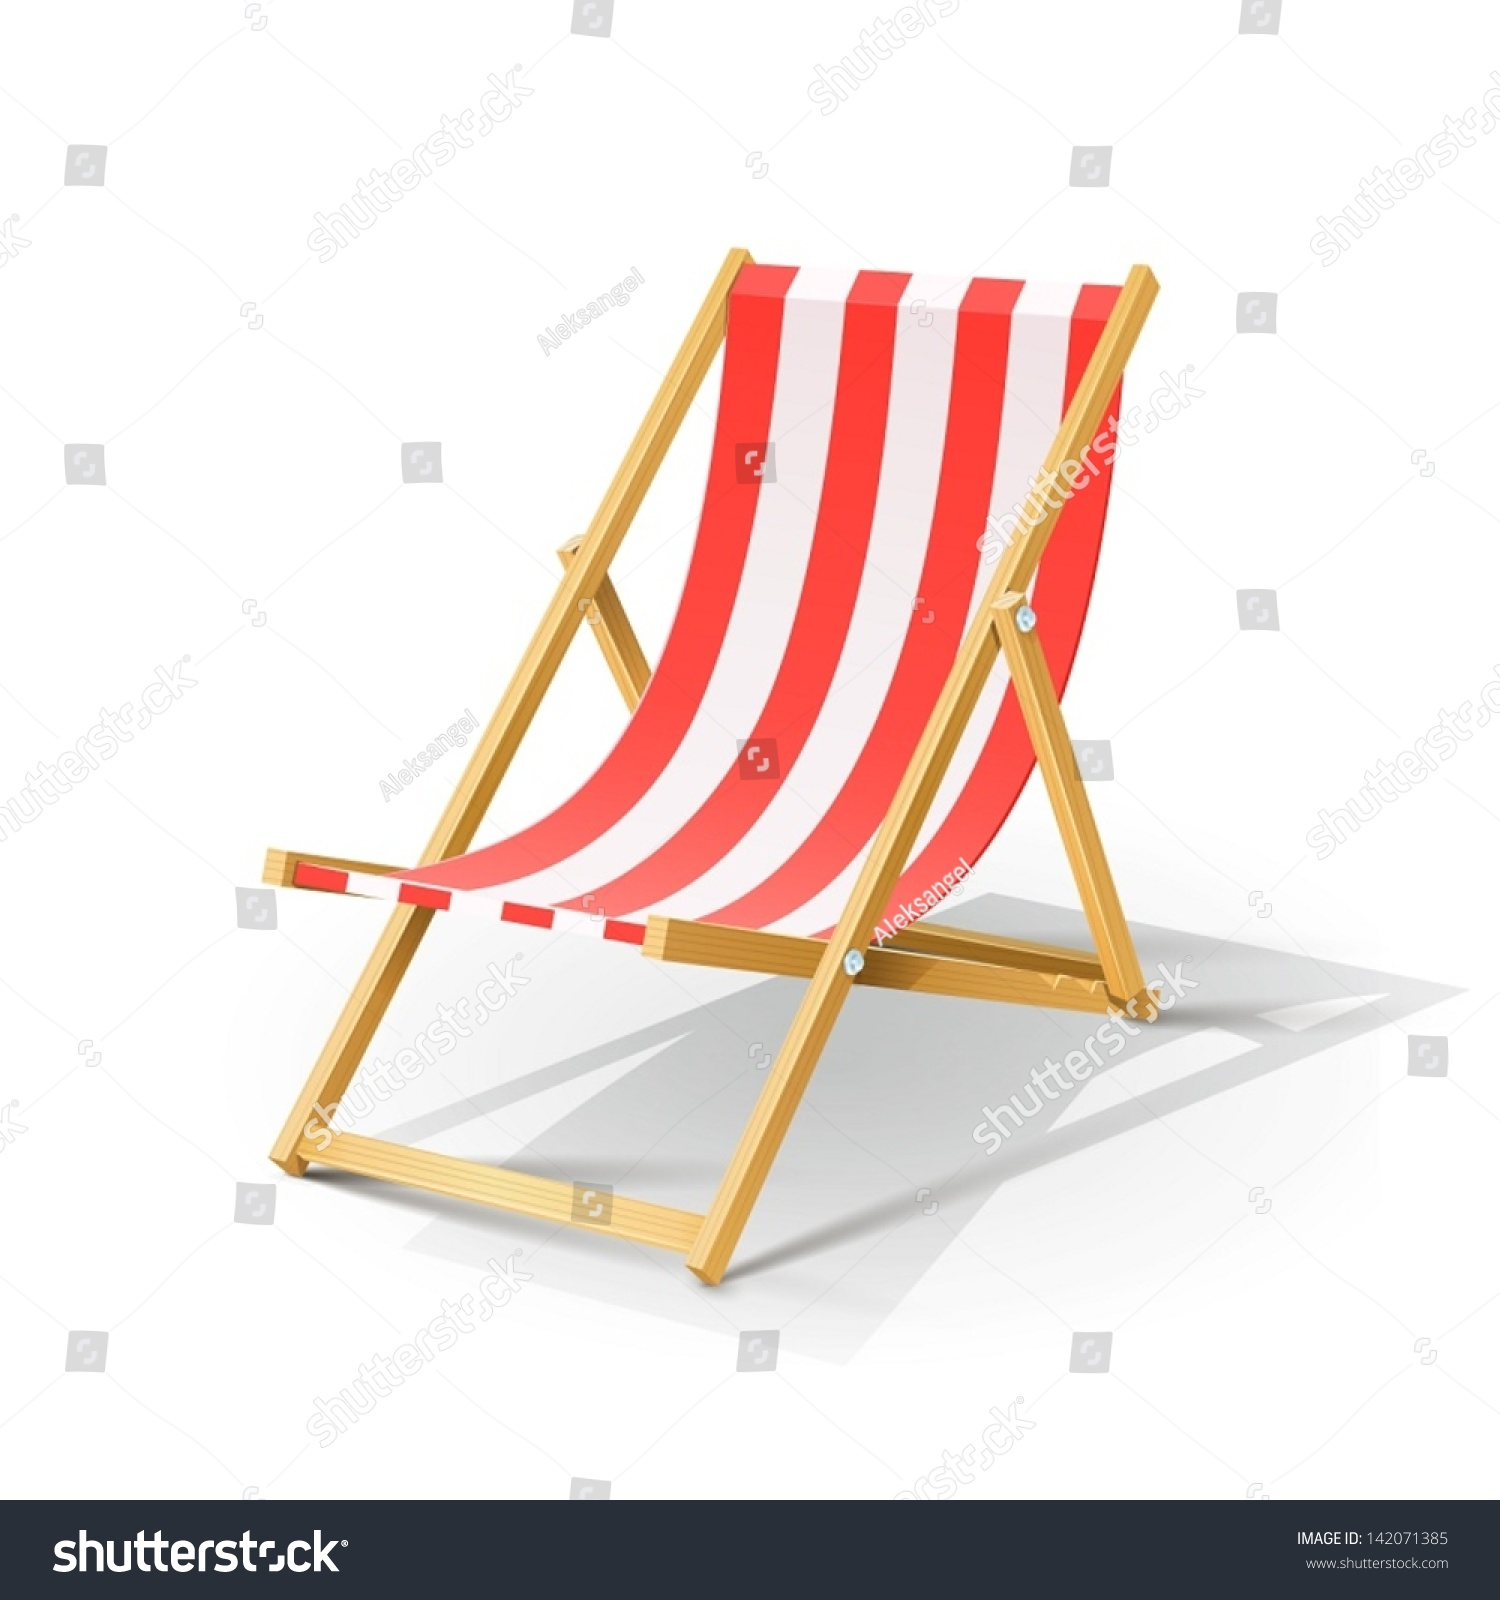 Wooden beach chaise longue vector illustration stock for Beach chaise longue